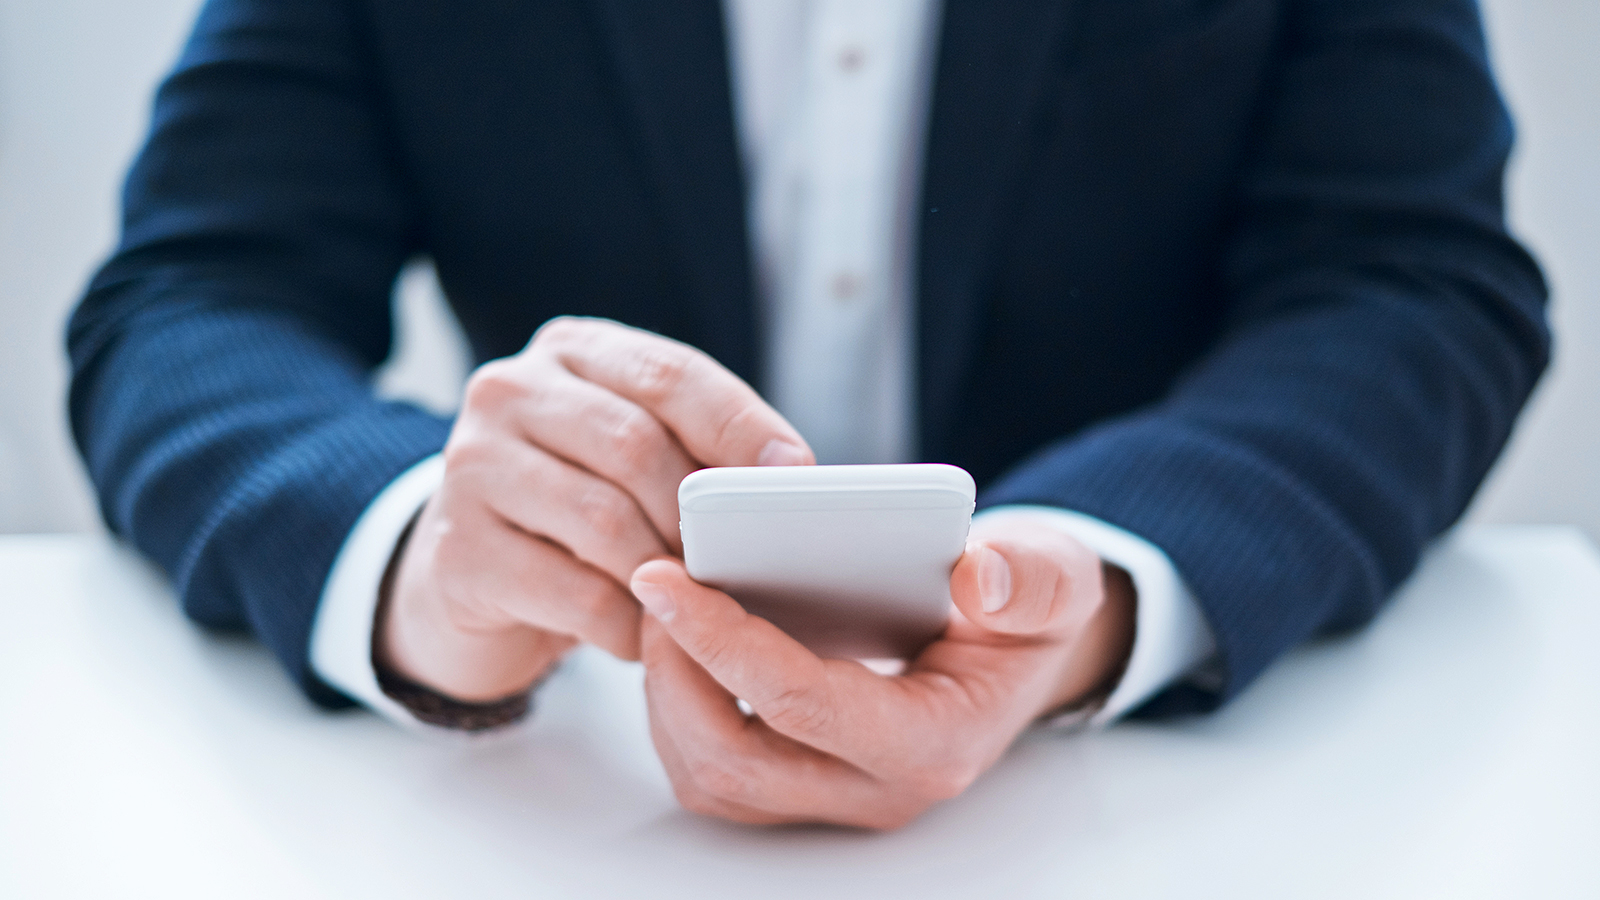 7 text messaging mistakes that can ruin your reputation at work